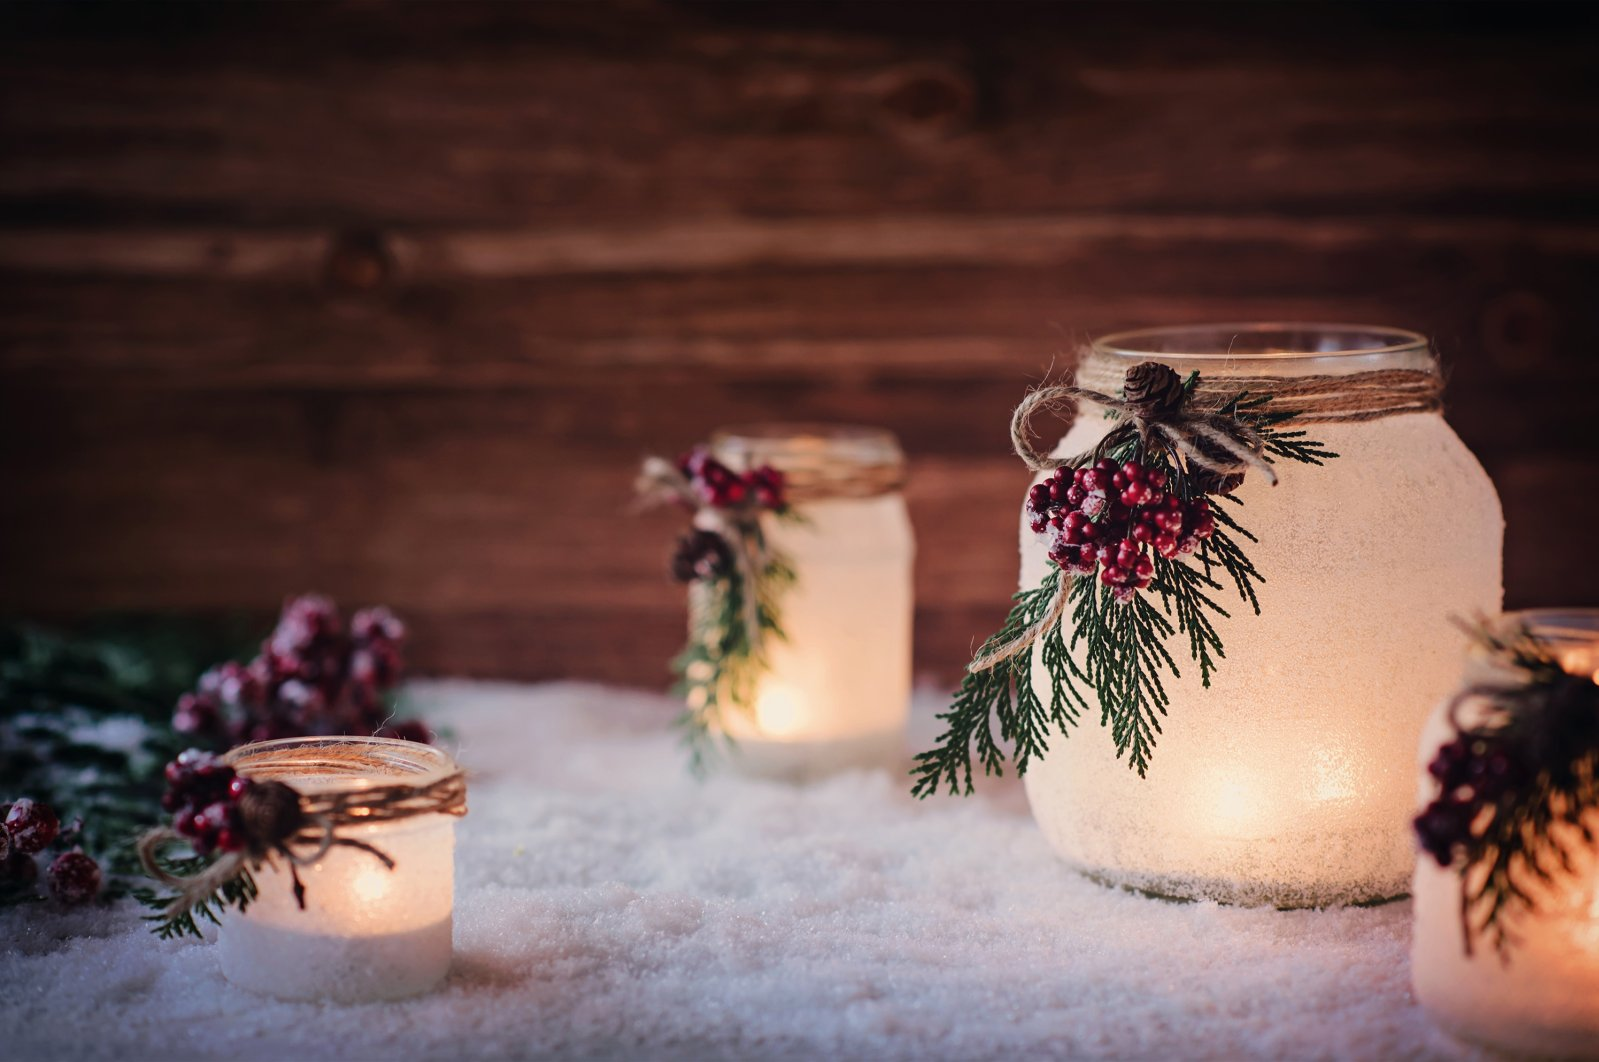 With some creativity and spray-on frost, you can create your own wintery frosty candles. (Shutterstock Photo)